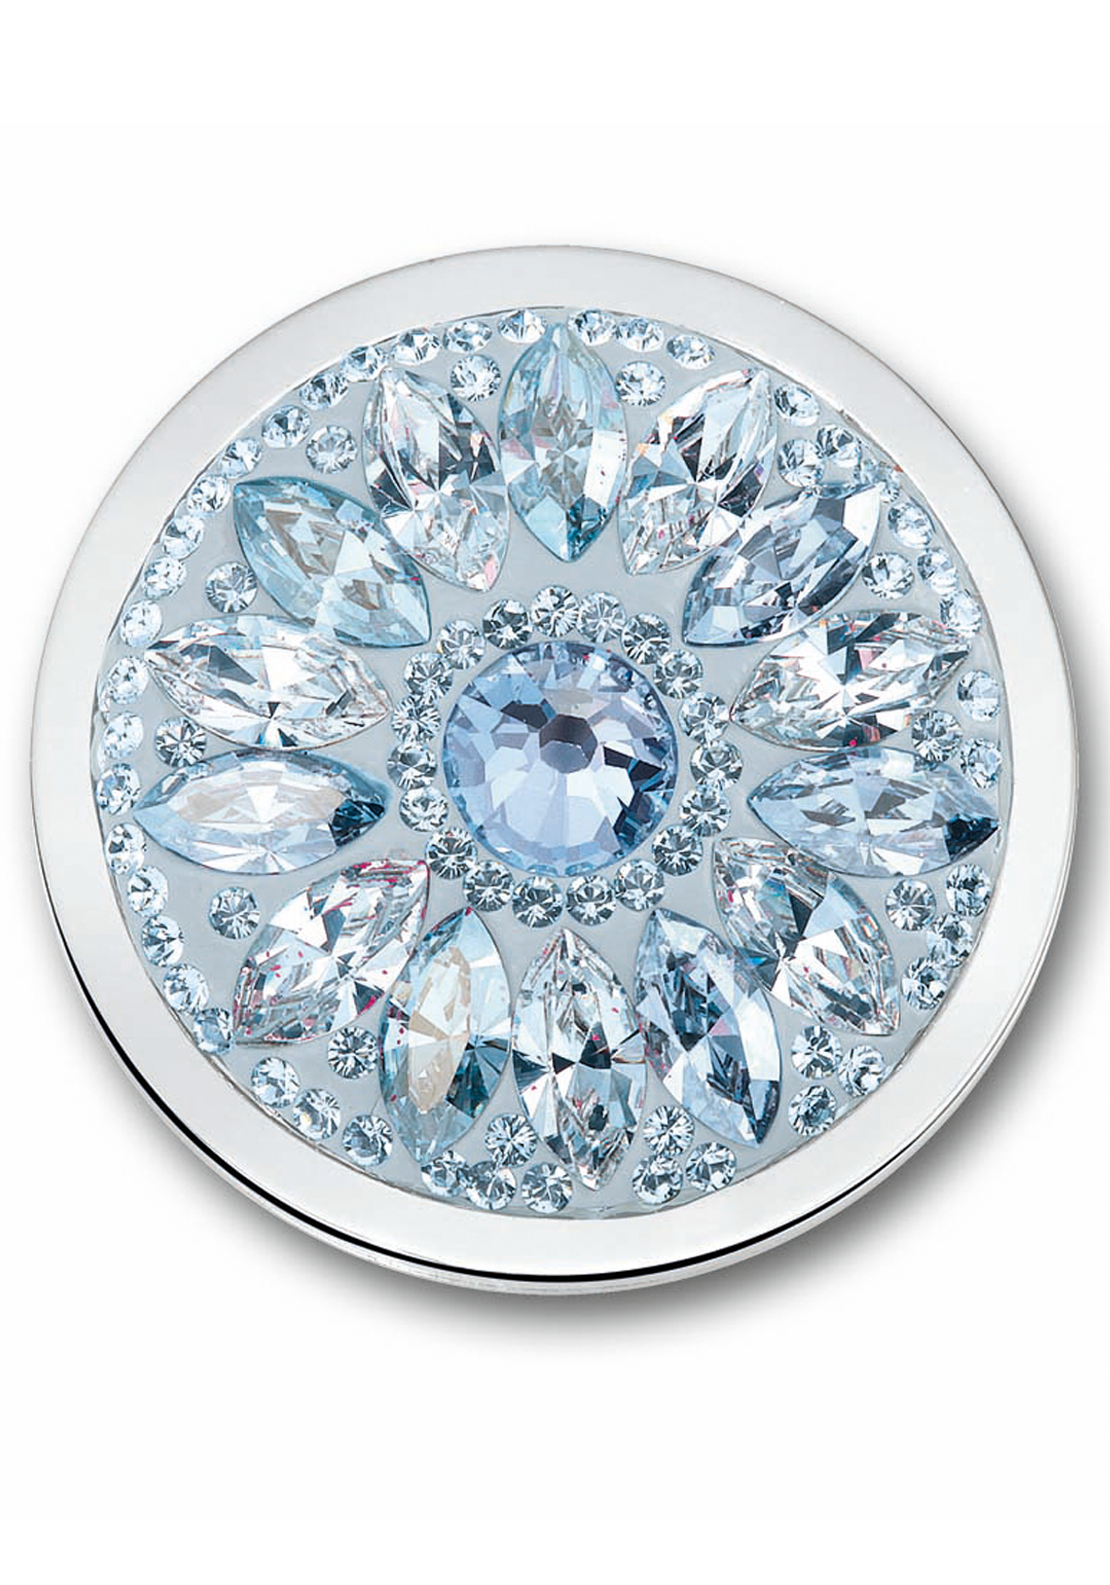 Mi Moneda Large Swarovski Dalia Moneda Coin, Ice Blue